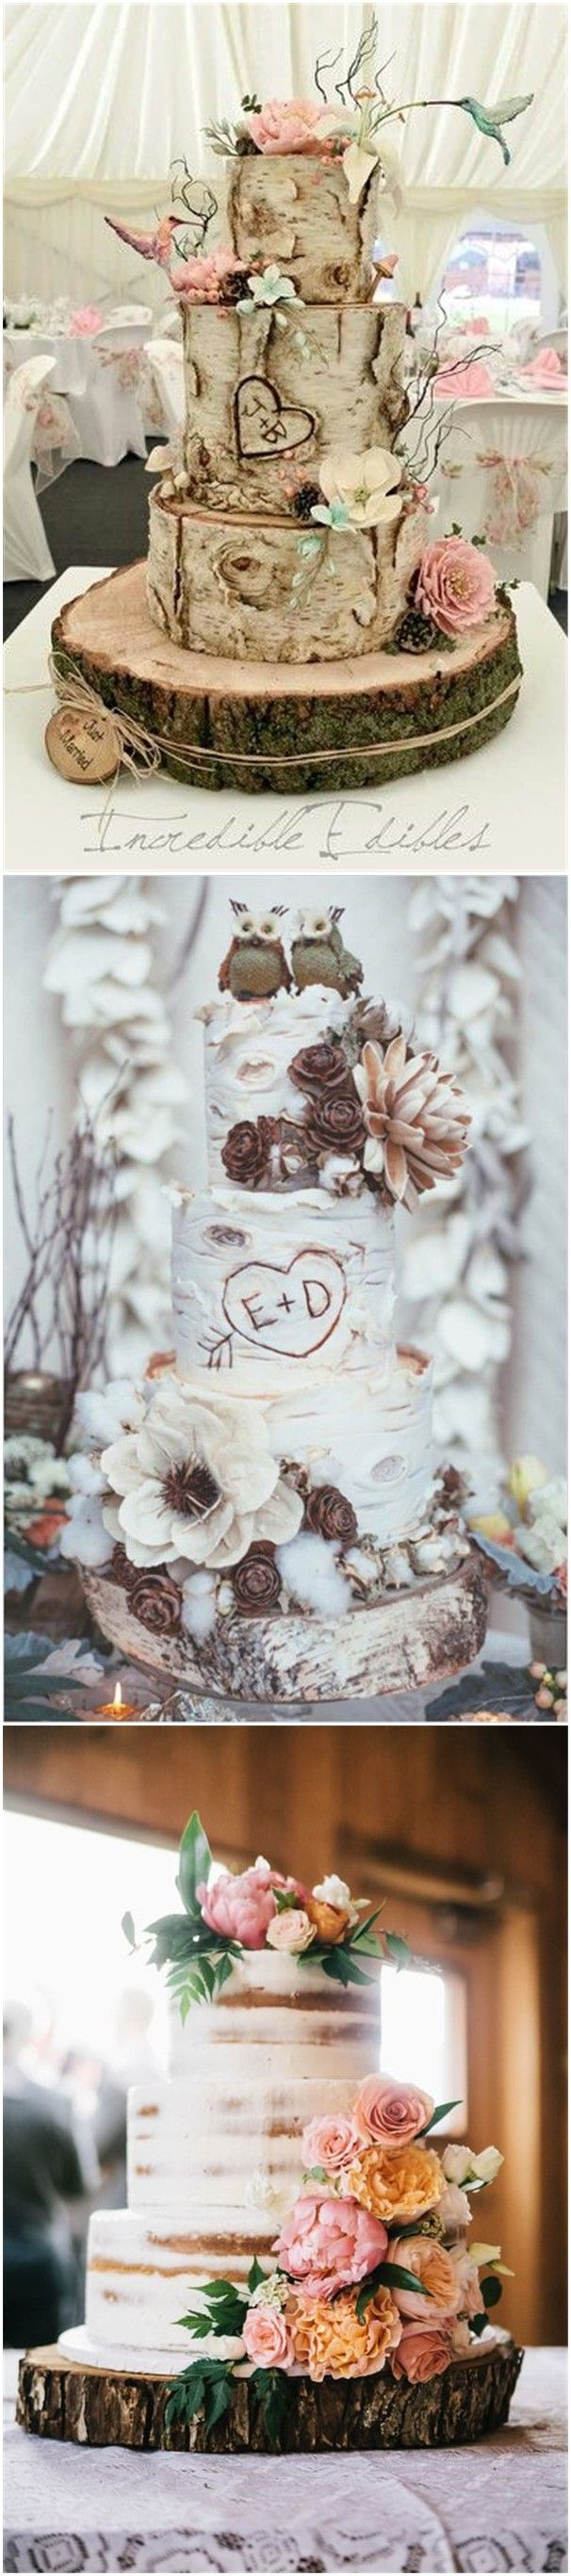 Country wedding cakes pictures - 22 Rustic Tree Stumps Wedding Cakes For Your Country Wedding